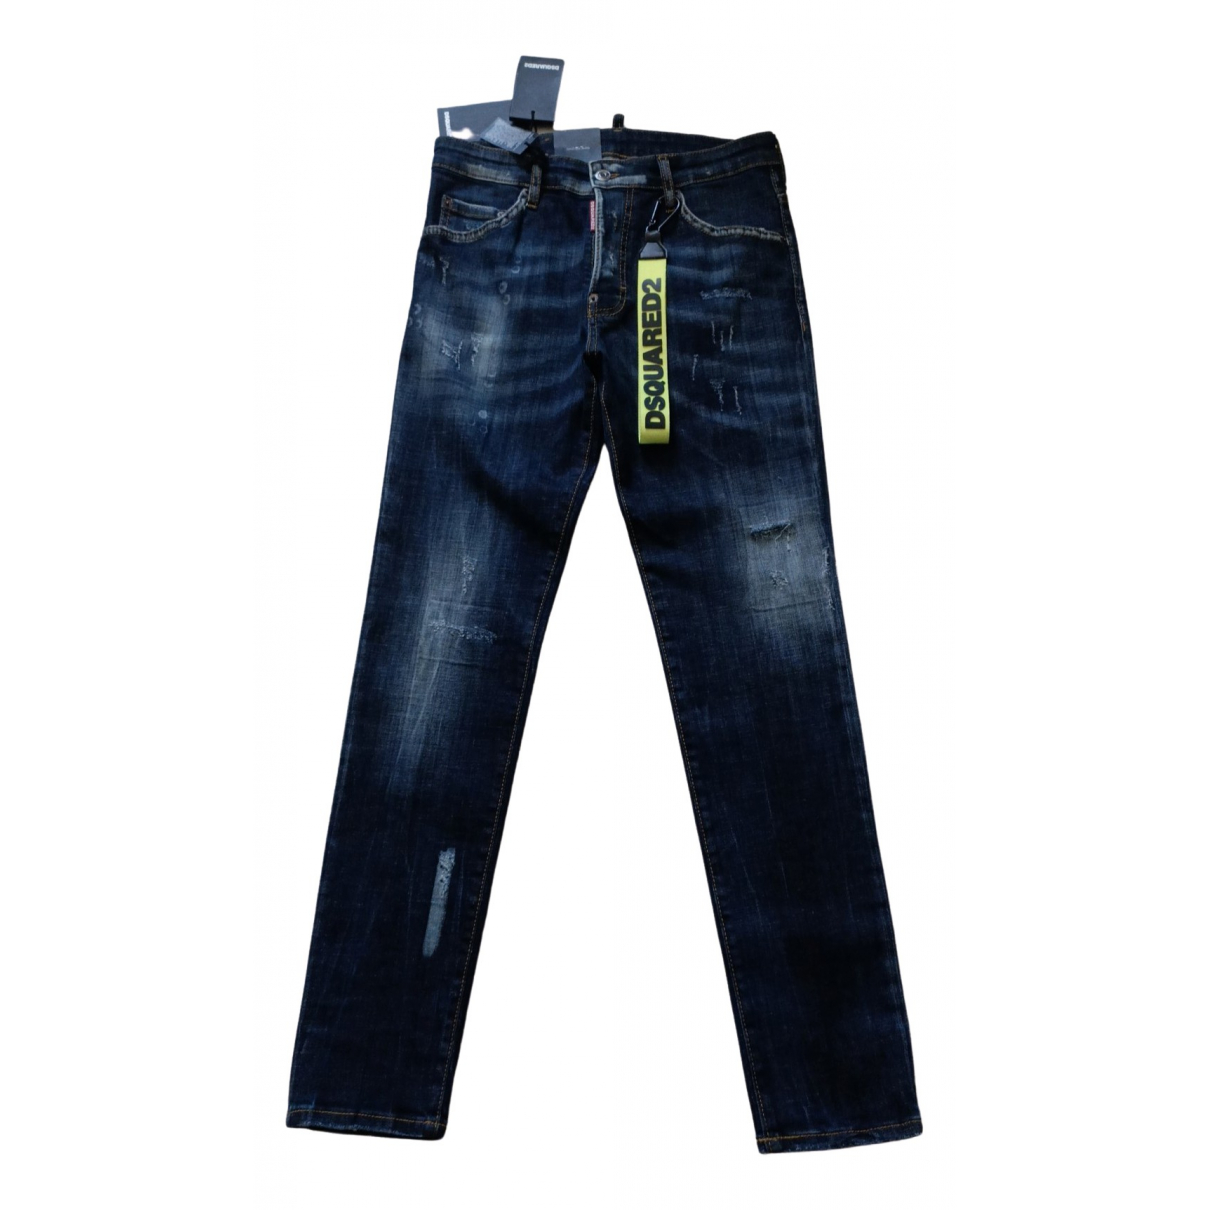 Dsquared2 \N Blue Cotton Jeans for Men 38 - 40 FR